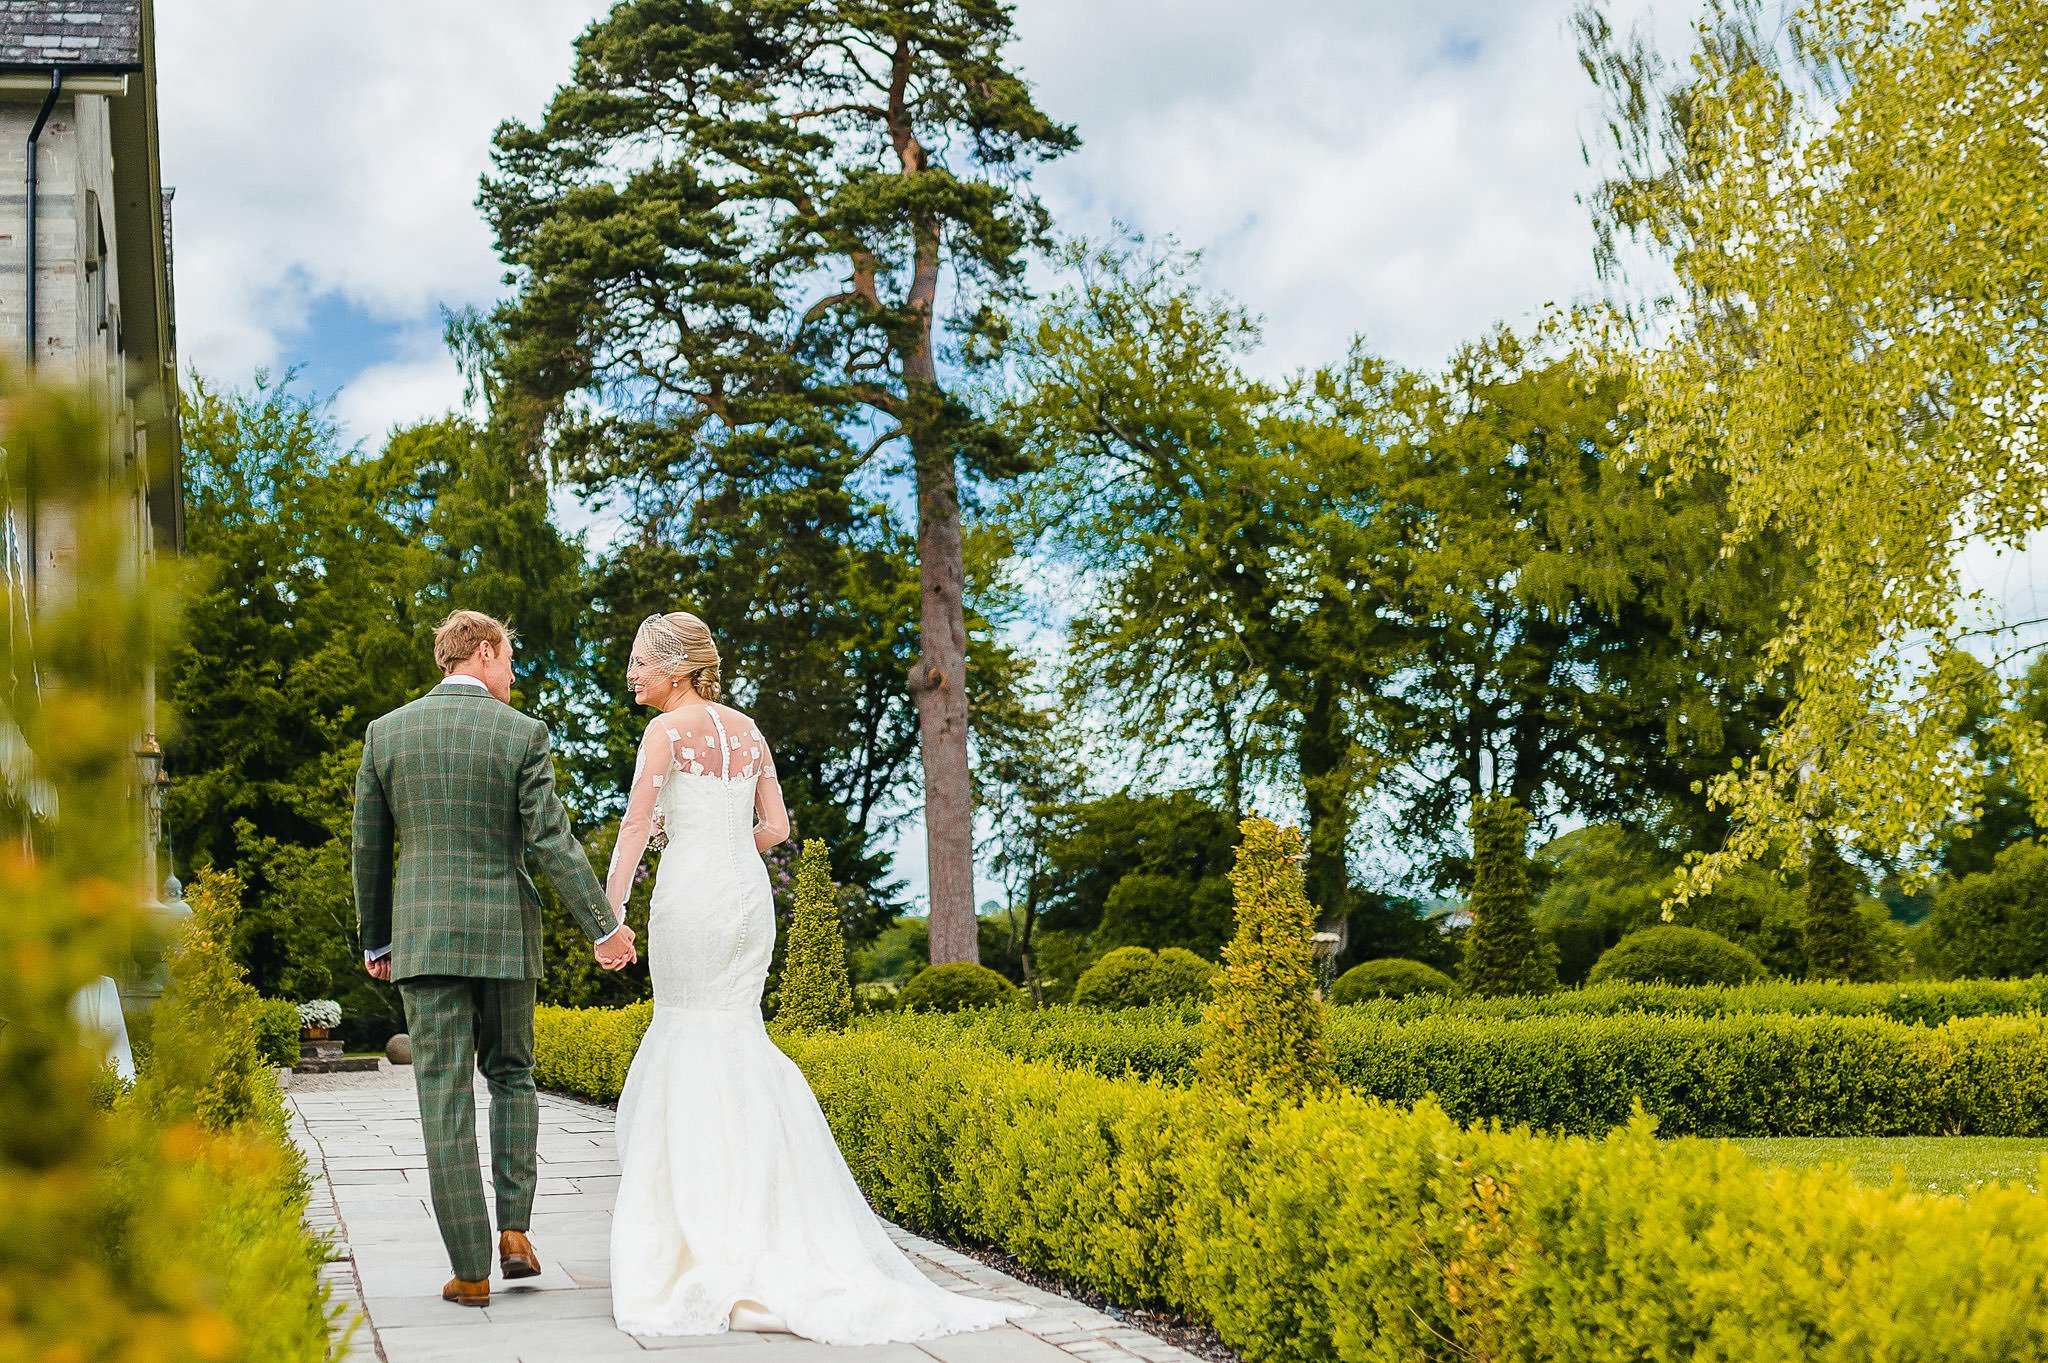 Lemore Manor Wedding Photographer | Hannah and Angus 34